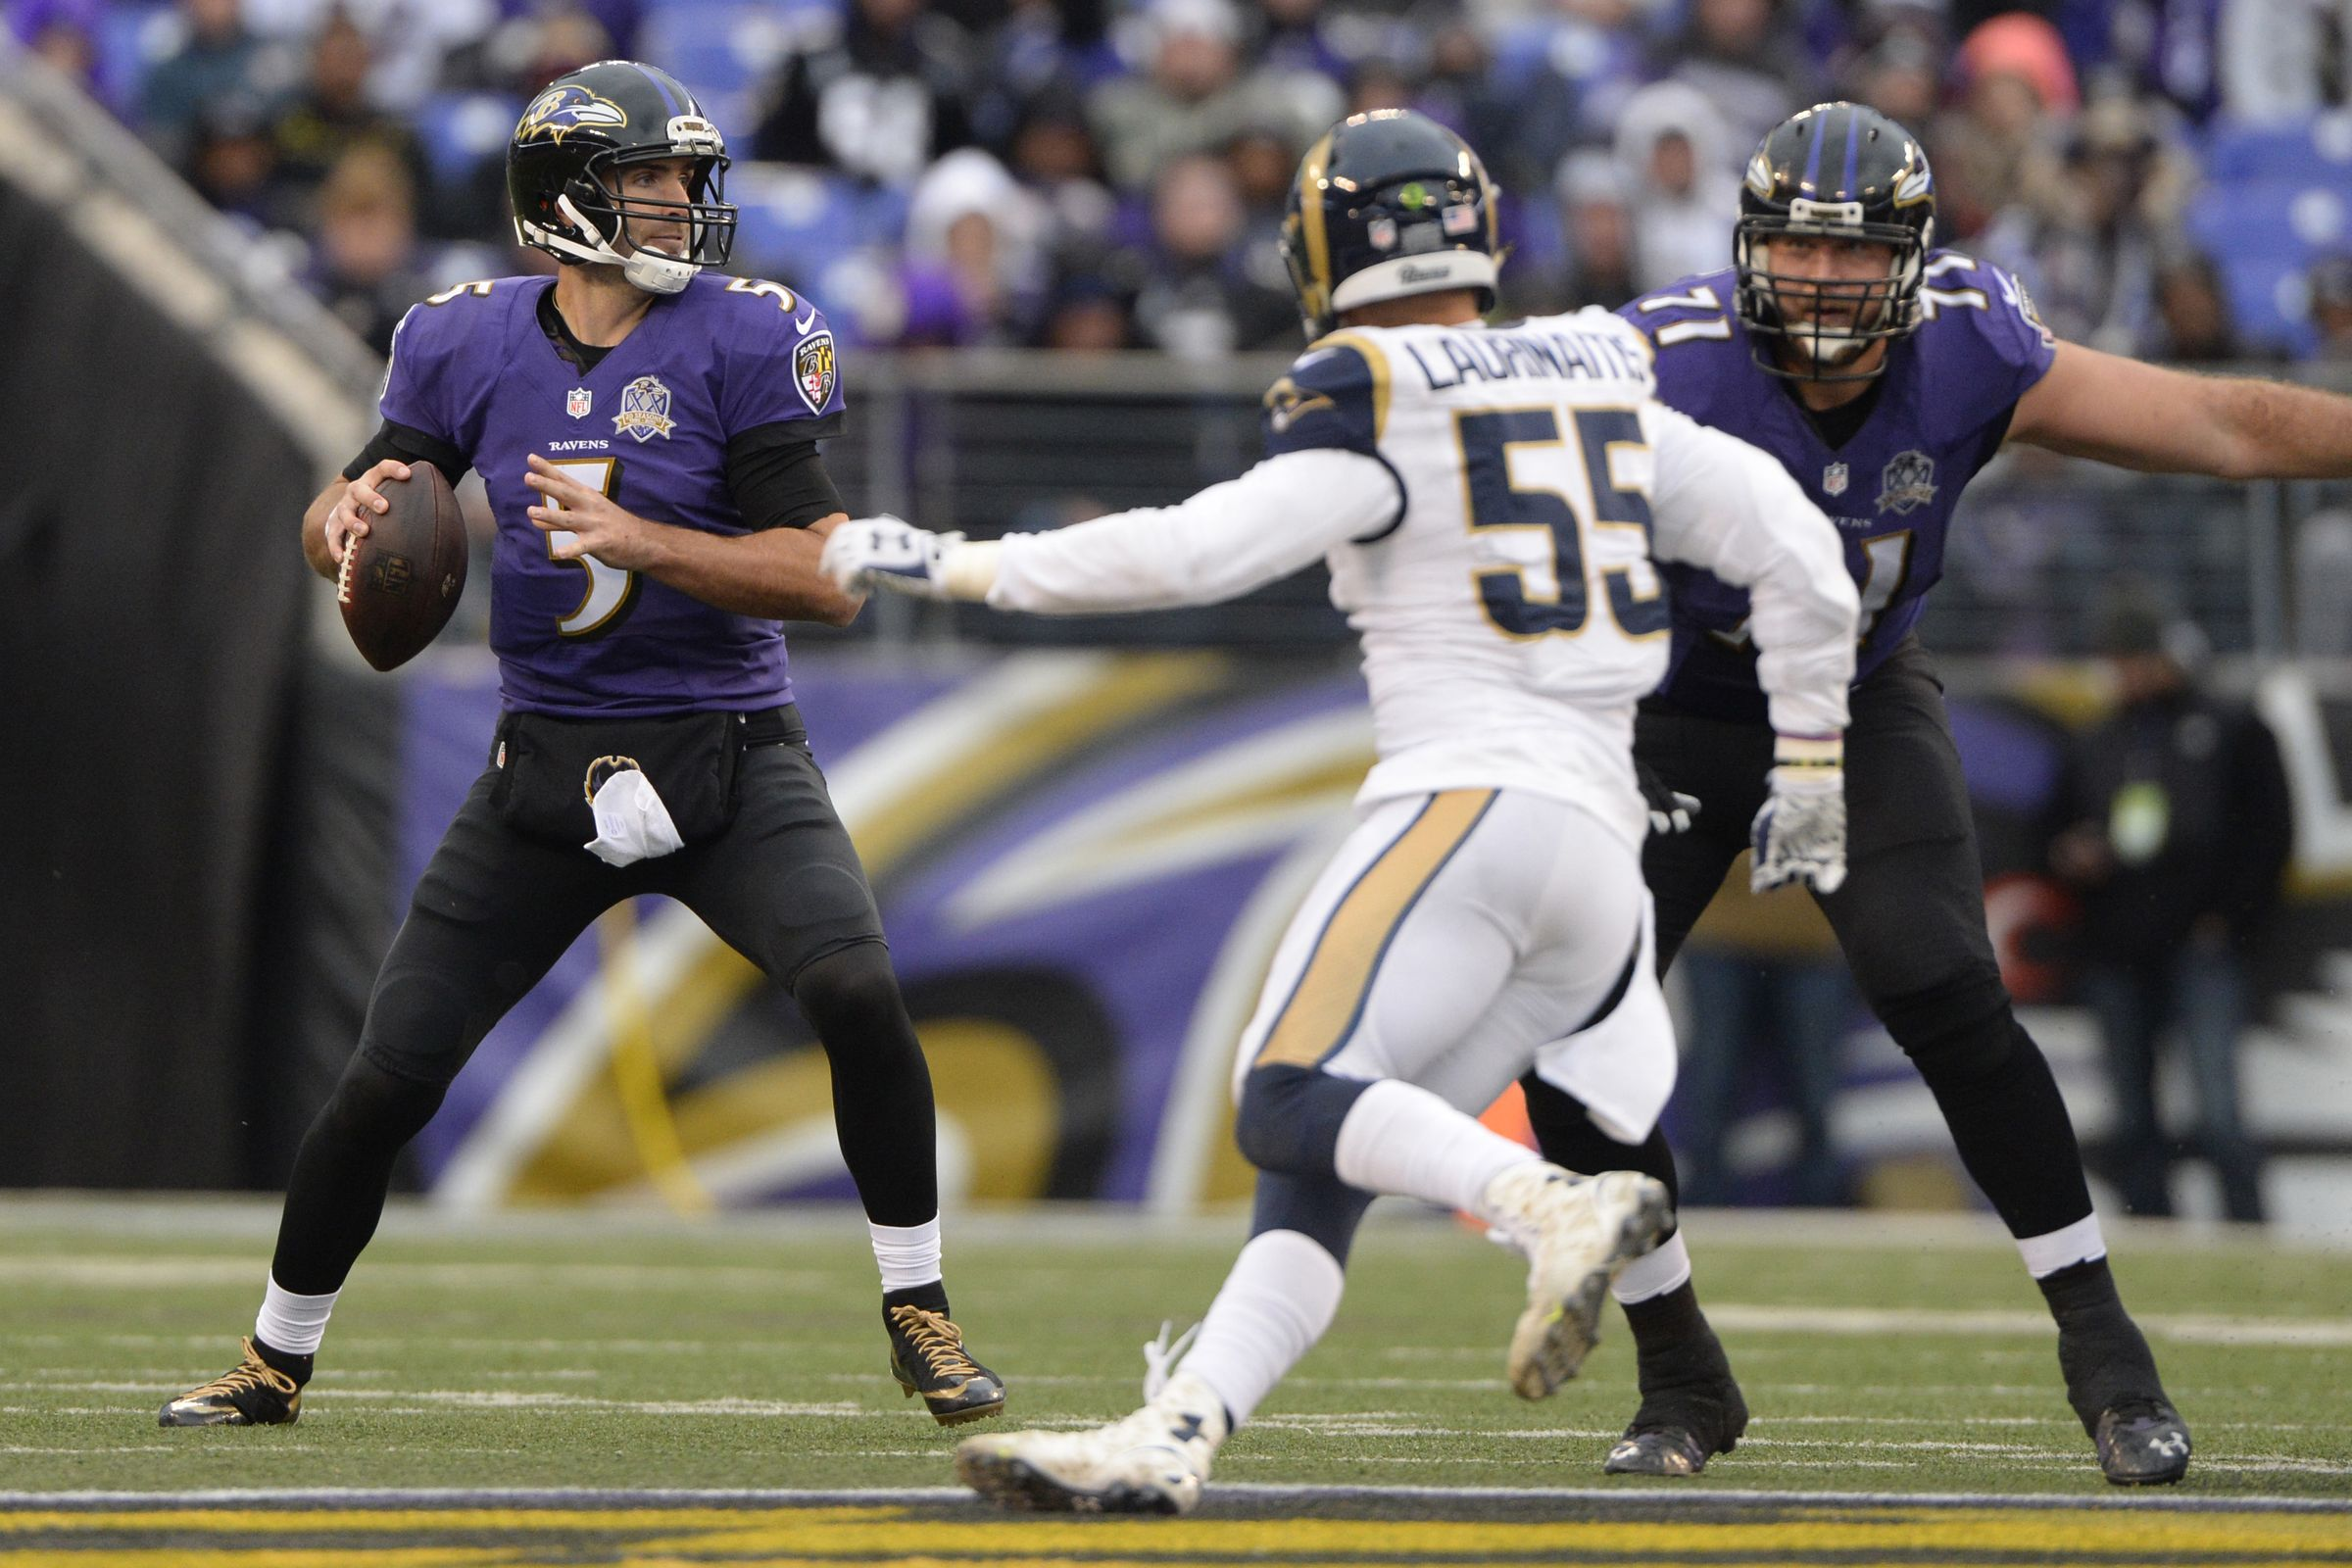 Baltimore Ravens HD Wallpaper | Background Image | 2400x1600 | ID:664782 - Wallpaper Abyss